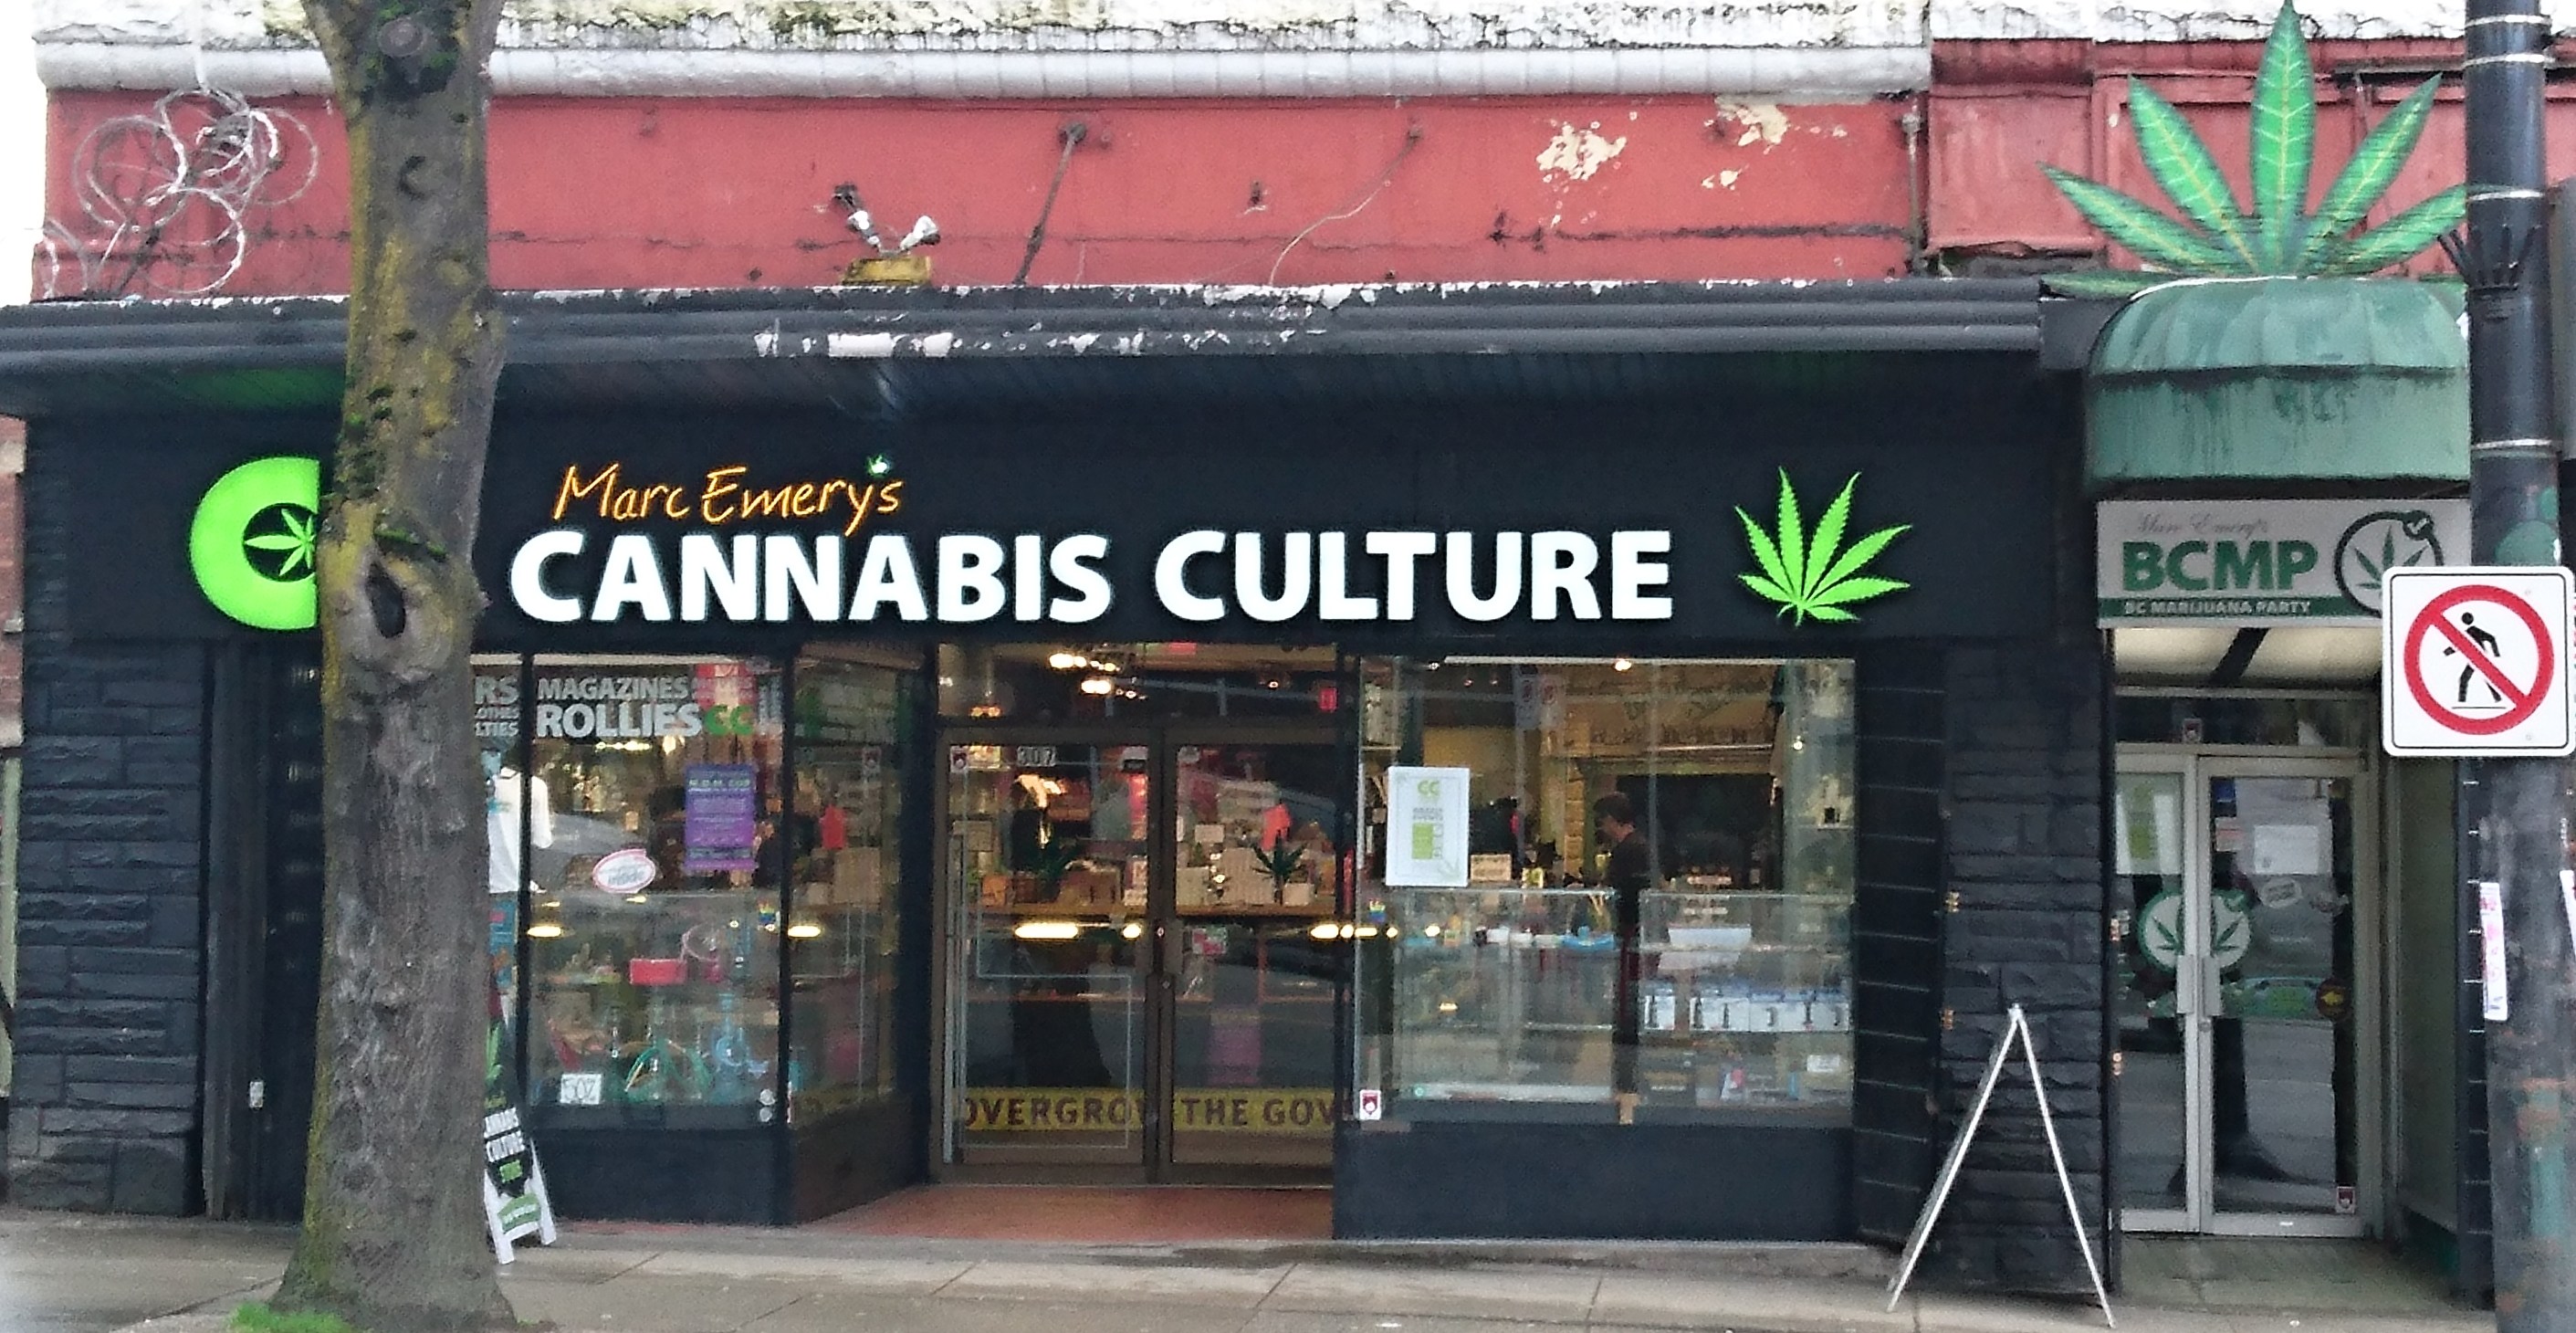 Landed Newsletter No. 17 looks at cannibas culture in Vancouver